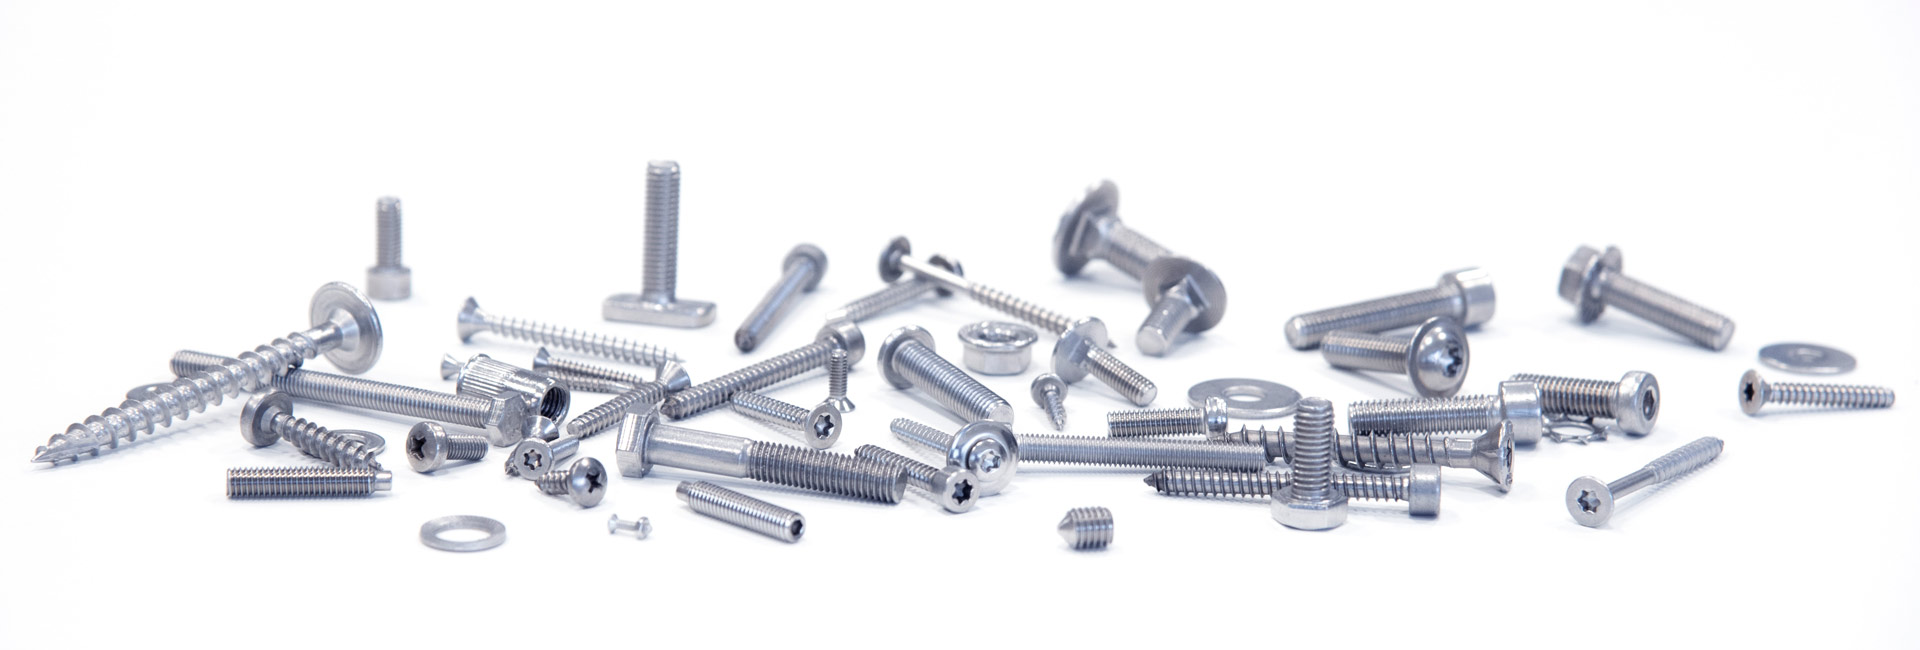 Possible applications of A2 AISI 304 stainless steel screws